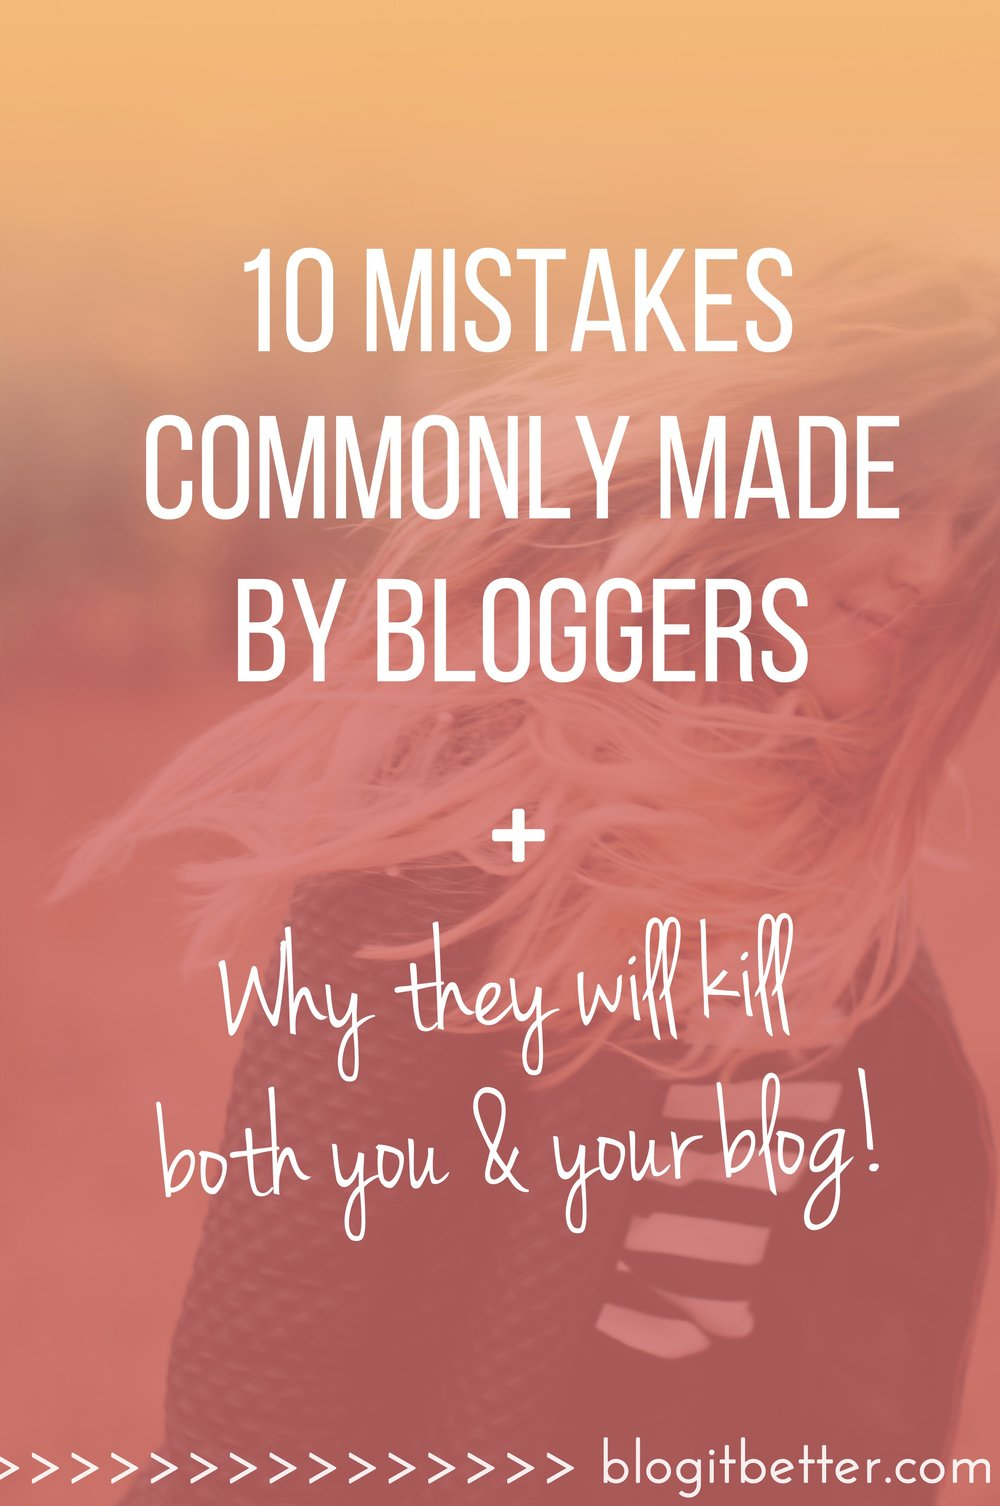 Is your blog wearing you out? 10 mistakes commonly made by bloggers which will kill both you and your blog!